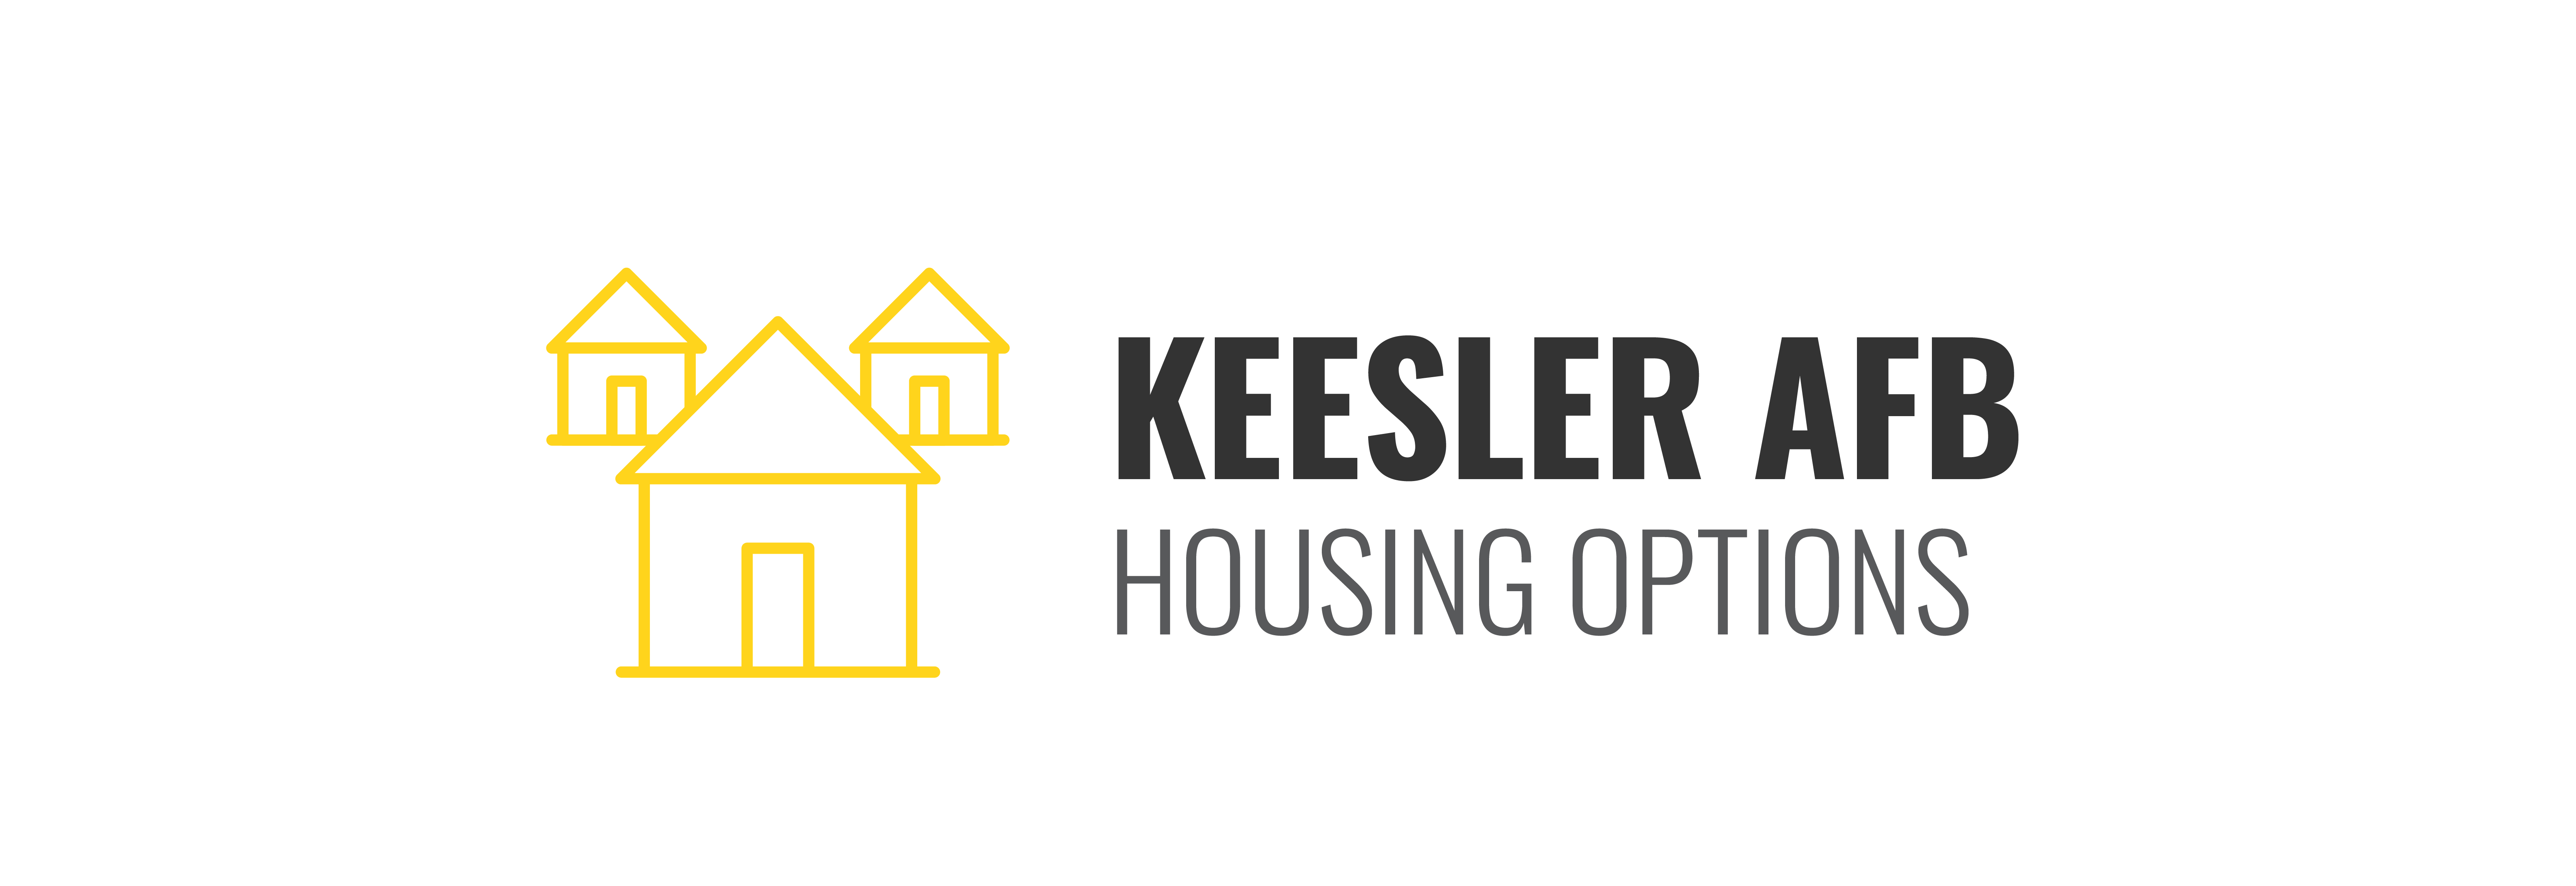 Keesler AFB Housing Options